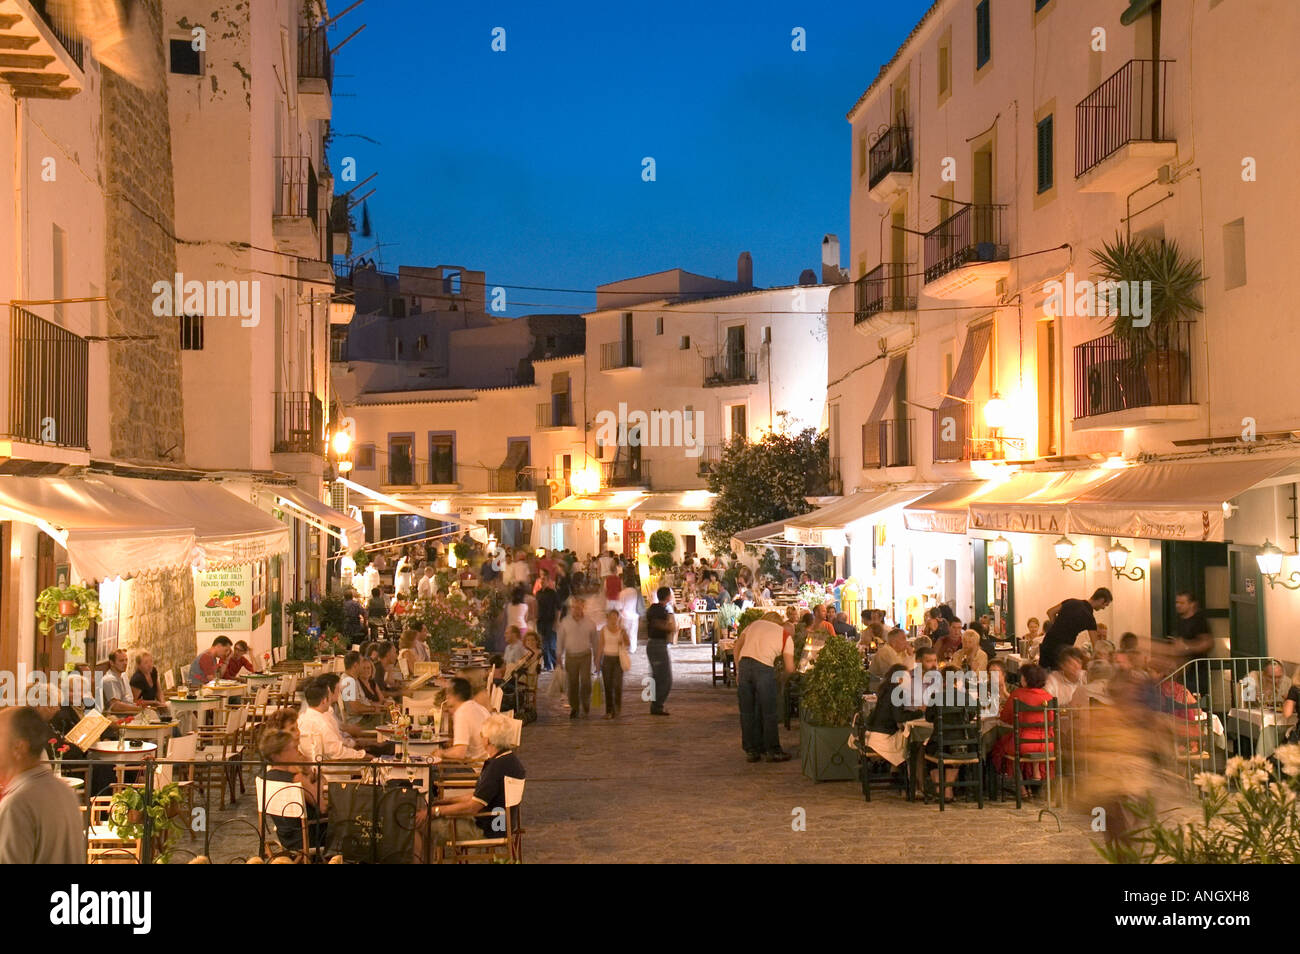 restaurants placa da villa ibiza town ibiza spain stock photo 8871831 alamy. Black Bedroom Furniture Sets. Home Design Ideas